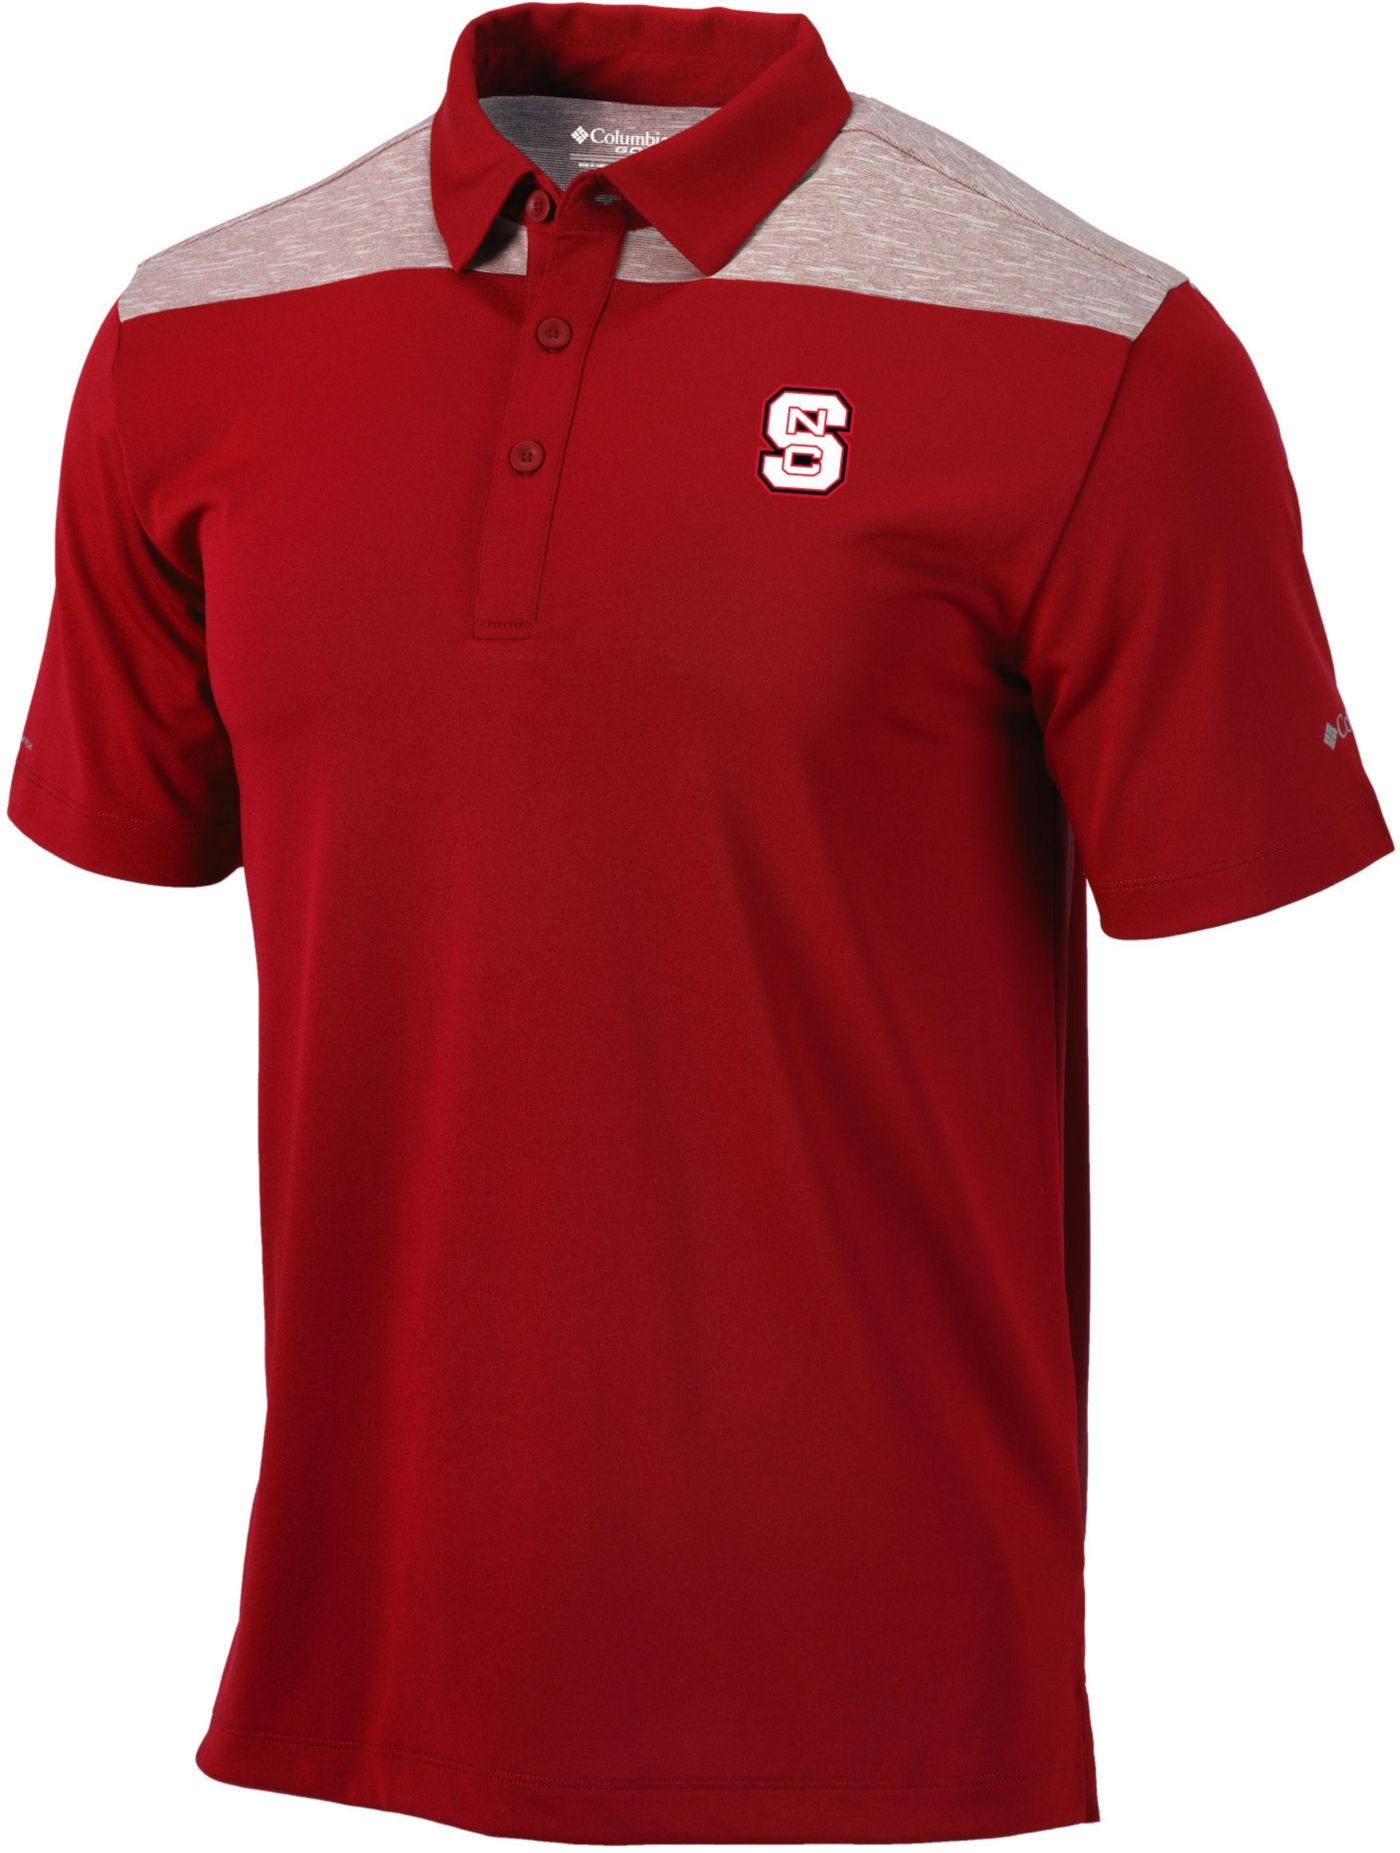 Columbia Men's NC State Wolfpack Red Utility Performance Polo